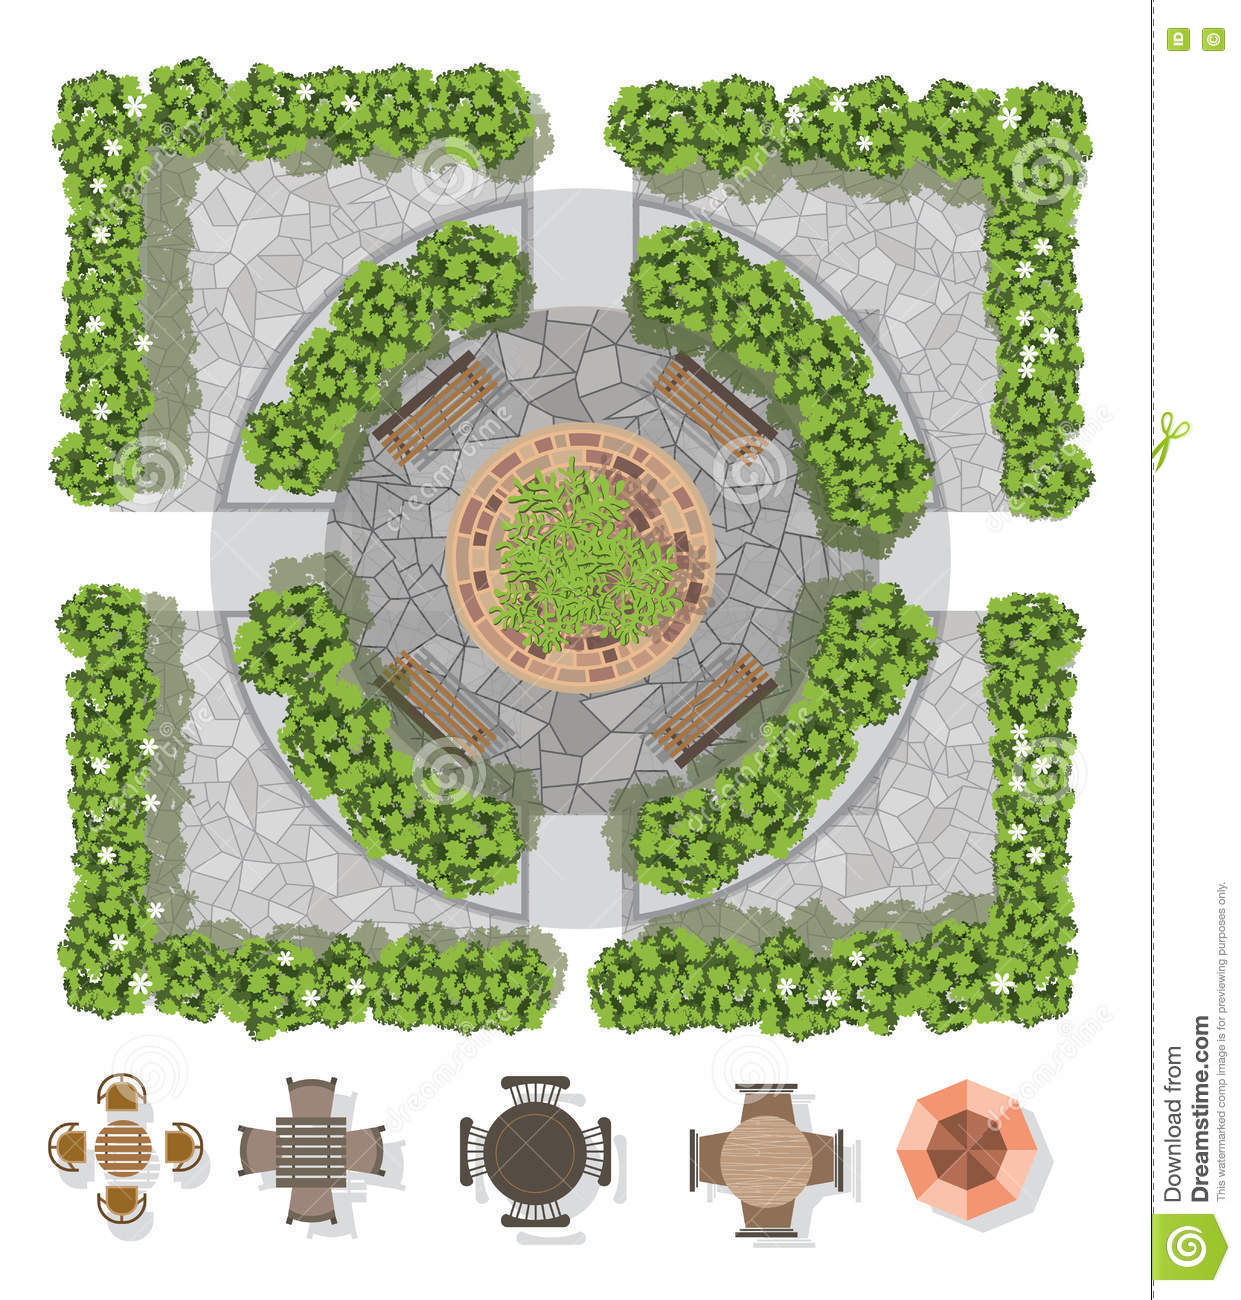 Landscape design composition with top view gardening stock for Garden pond design software free download